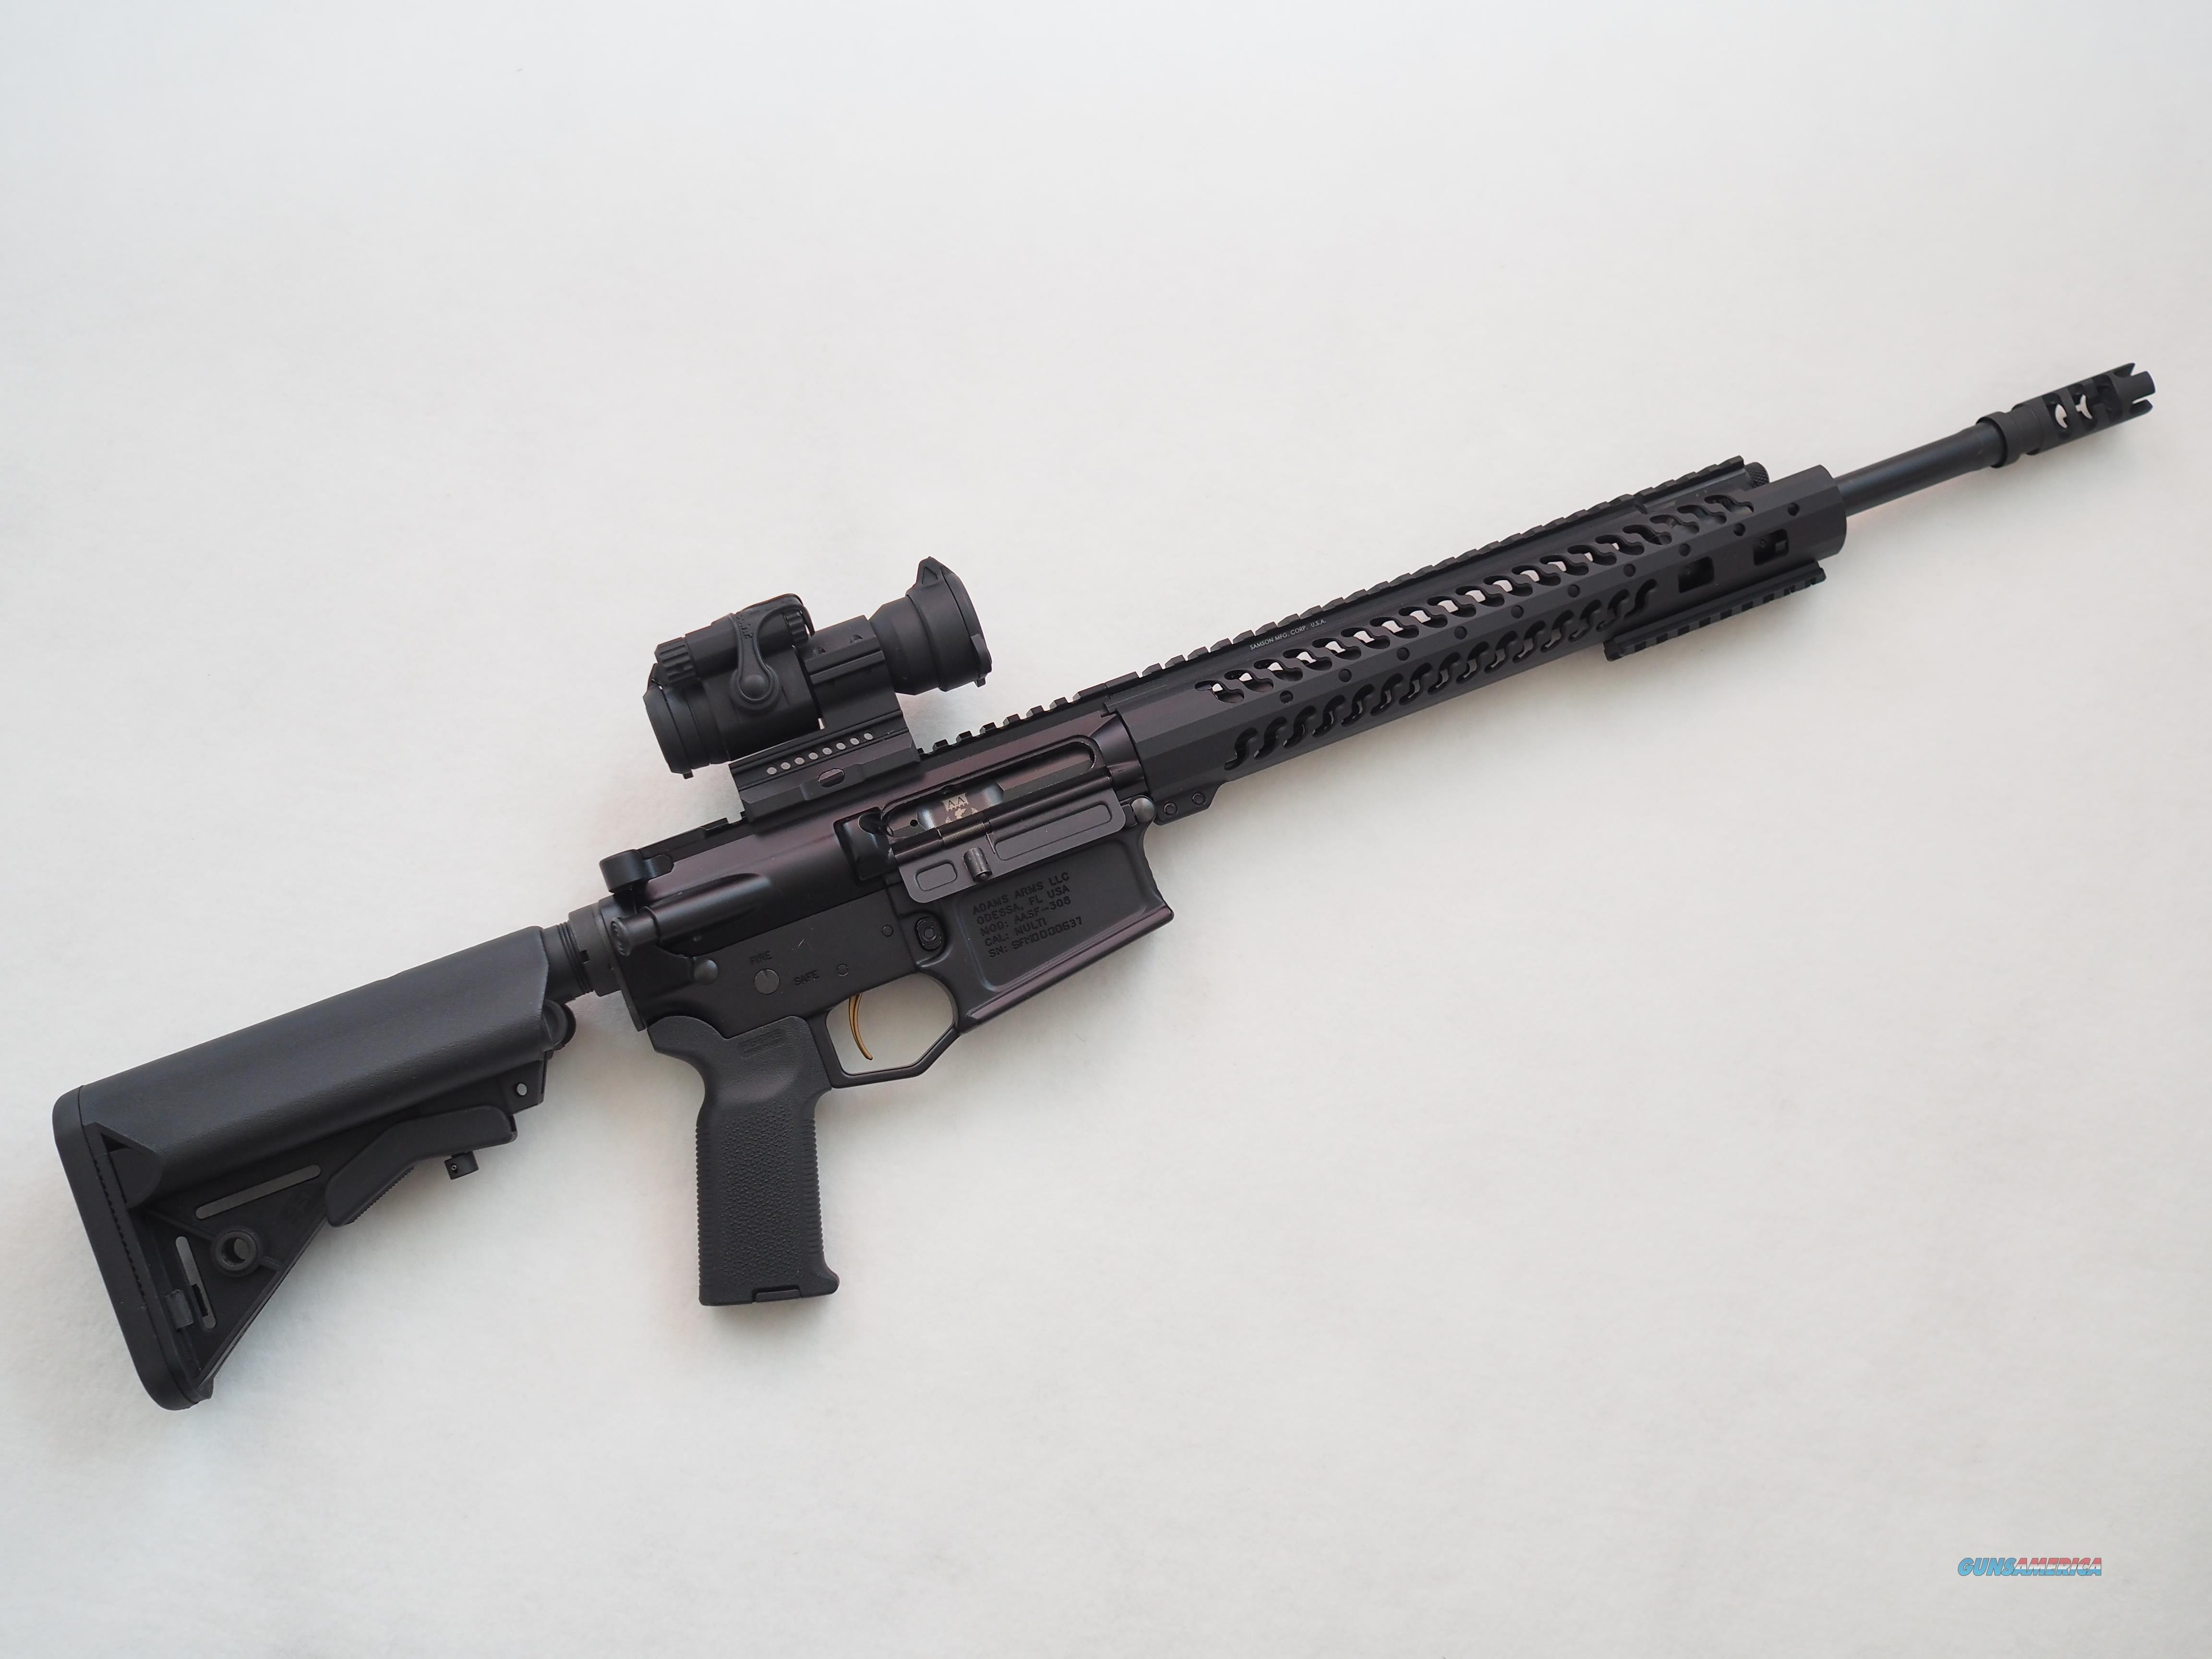 Adams Arms .308 Piston AR-10 TACTICAL PACKAGE  Guns > Rifles > AR-15 Rifles - Small Manufacturers > Complete Rifle